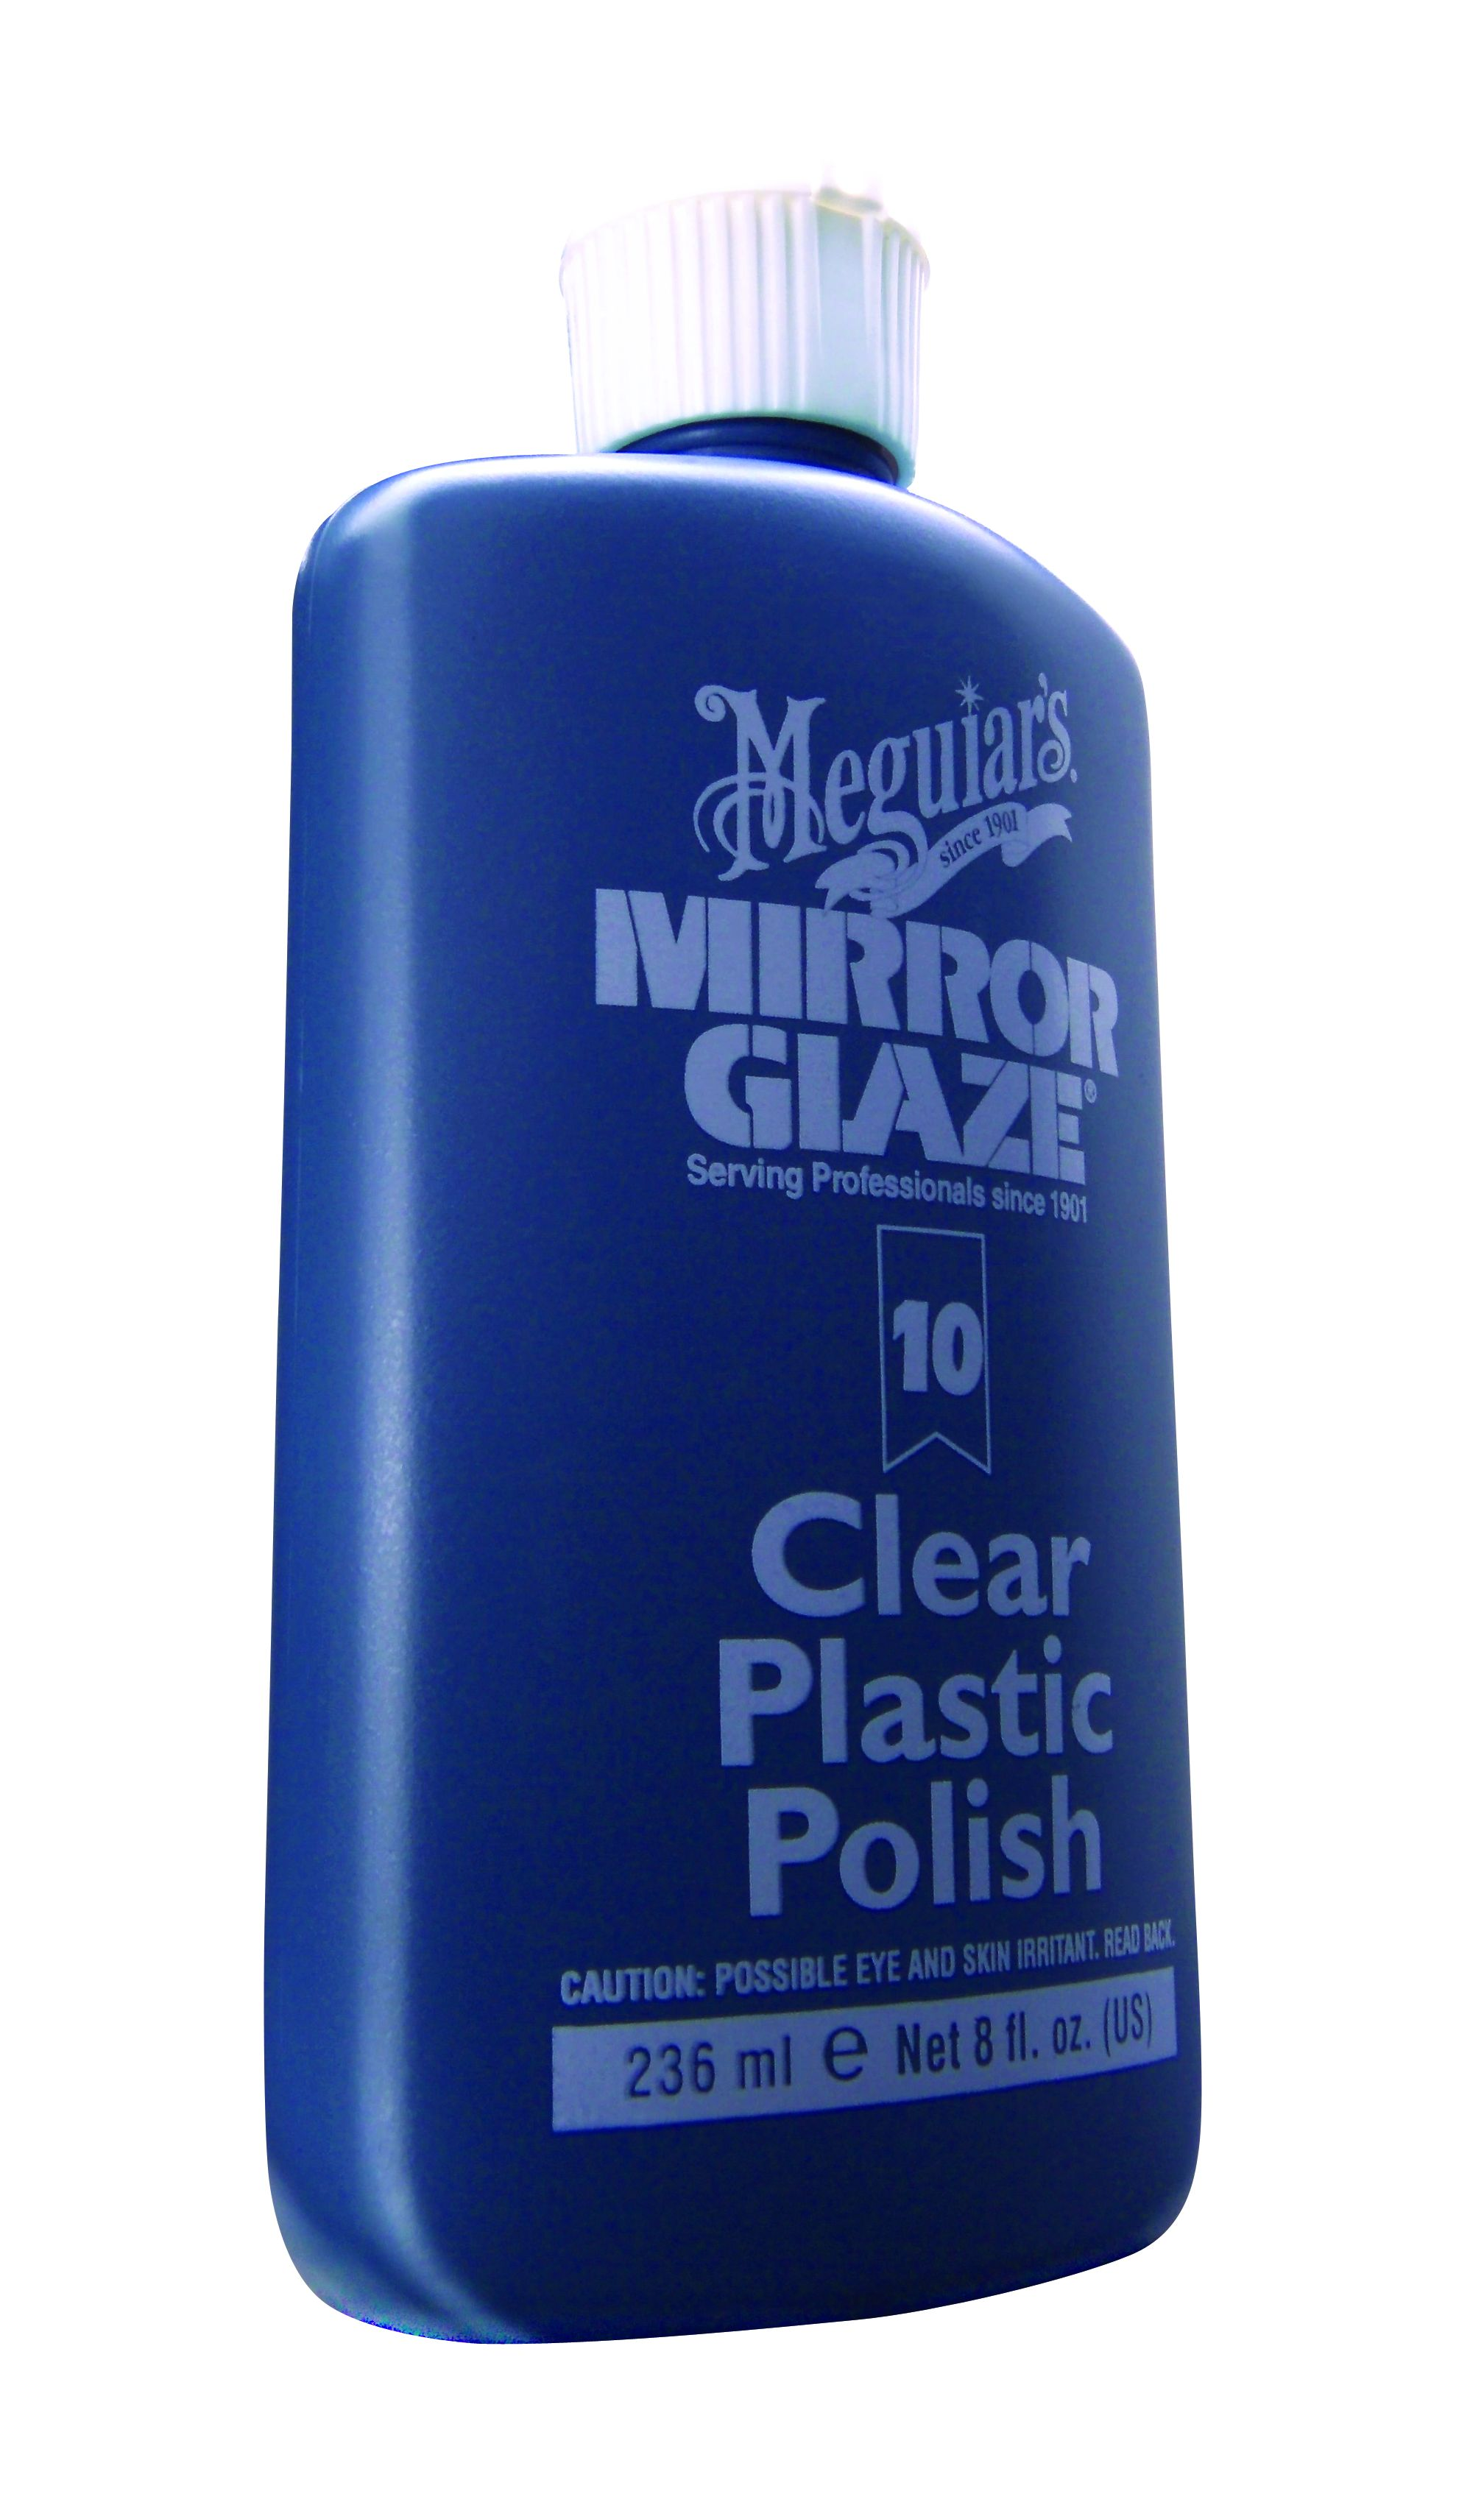 M1008 Meguiars Plastic Polish Use To Clean/ Shine/ Protect/ Remove